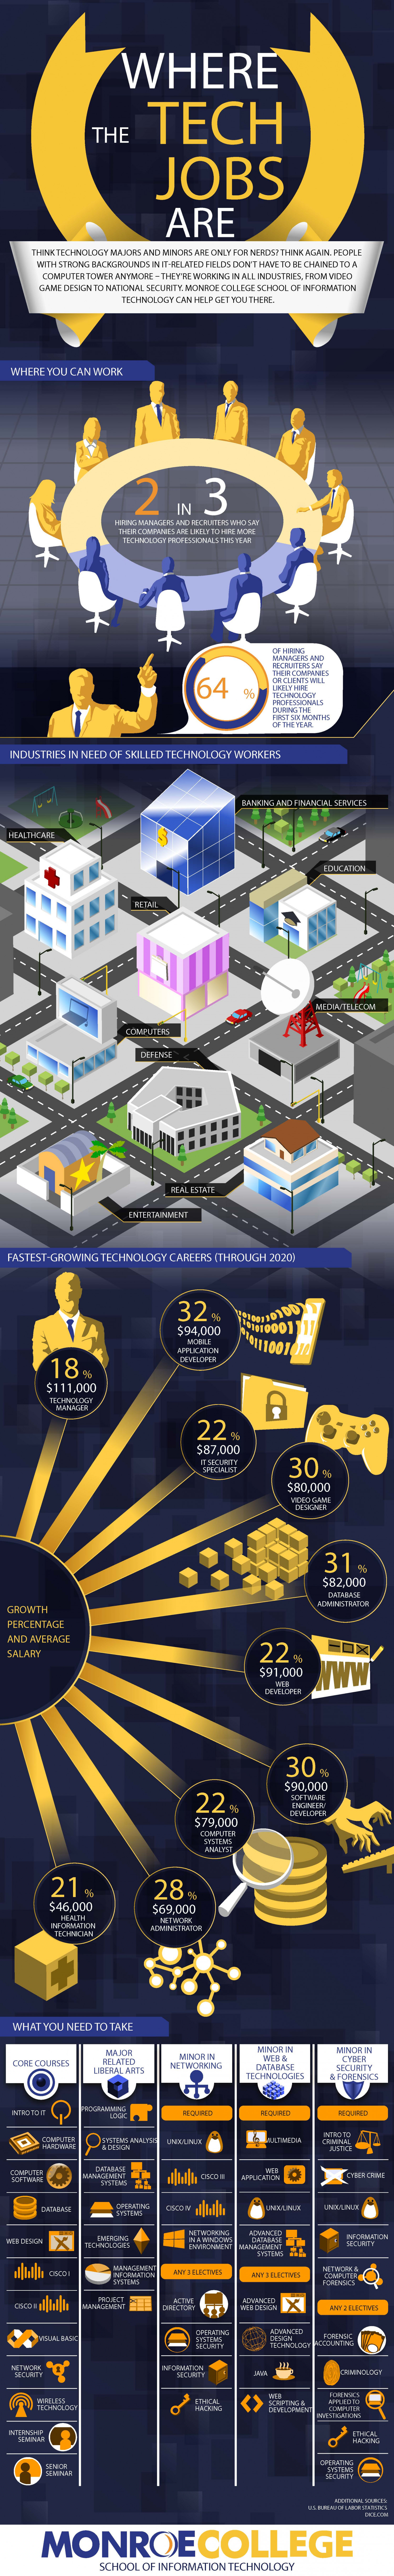 Where The Tech Jobs Are - Monroe College Infographic